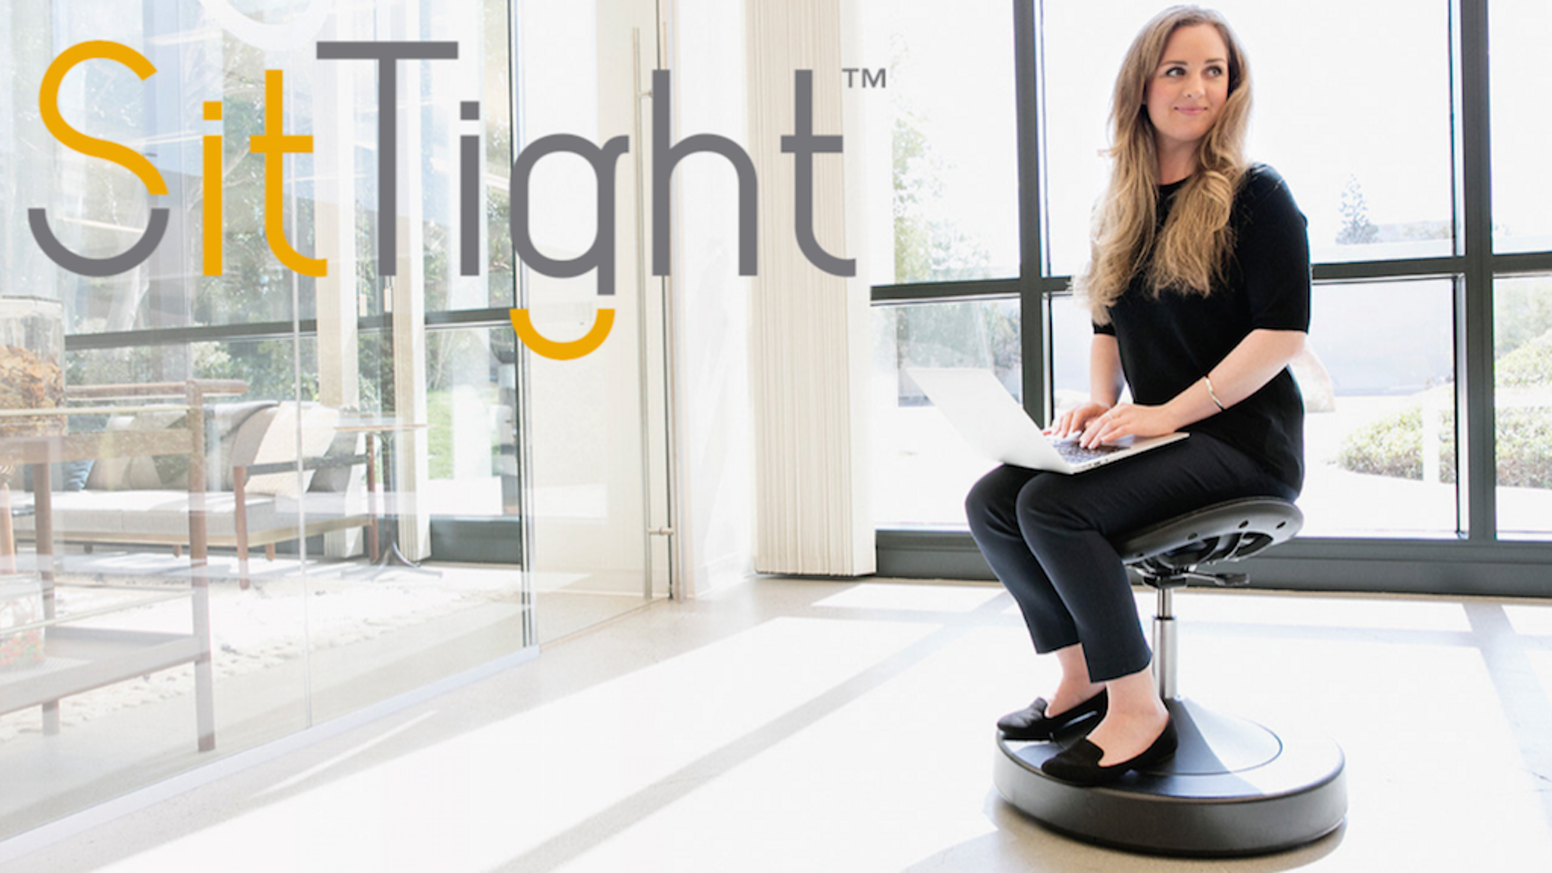 Our chair transforms sitting into an activity that improves your health by using your body's natural ability to balance - sit tight.